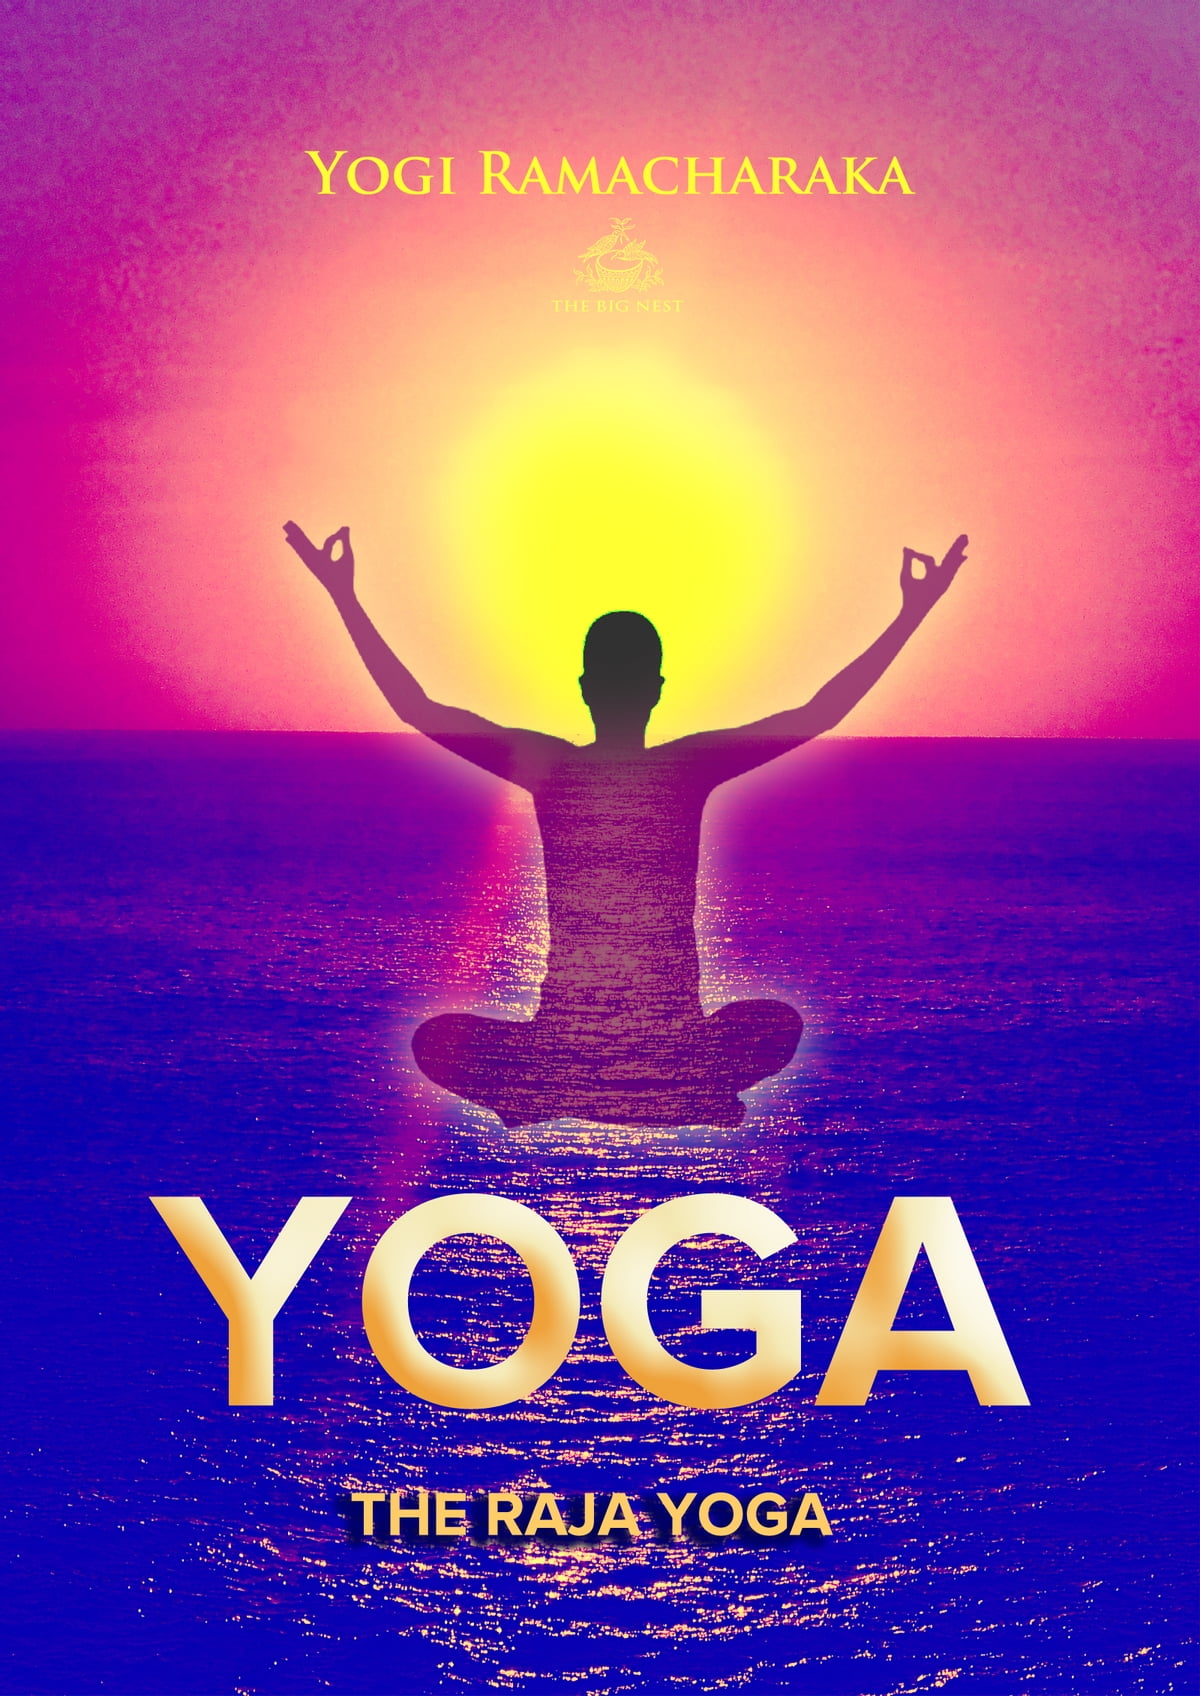 Raja Yoga Libro The Raja Yoga Ebook By Yogi Ramacharaka Rakuten Kobo